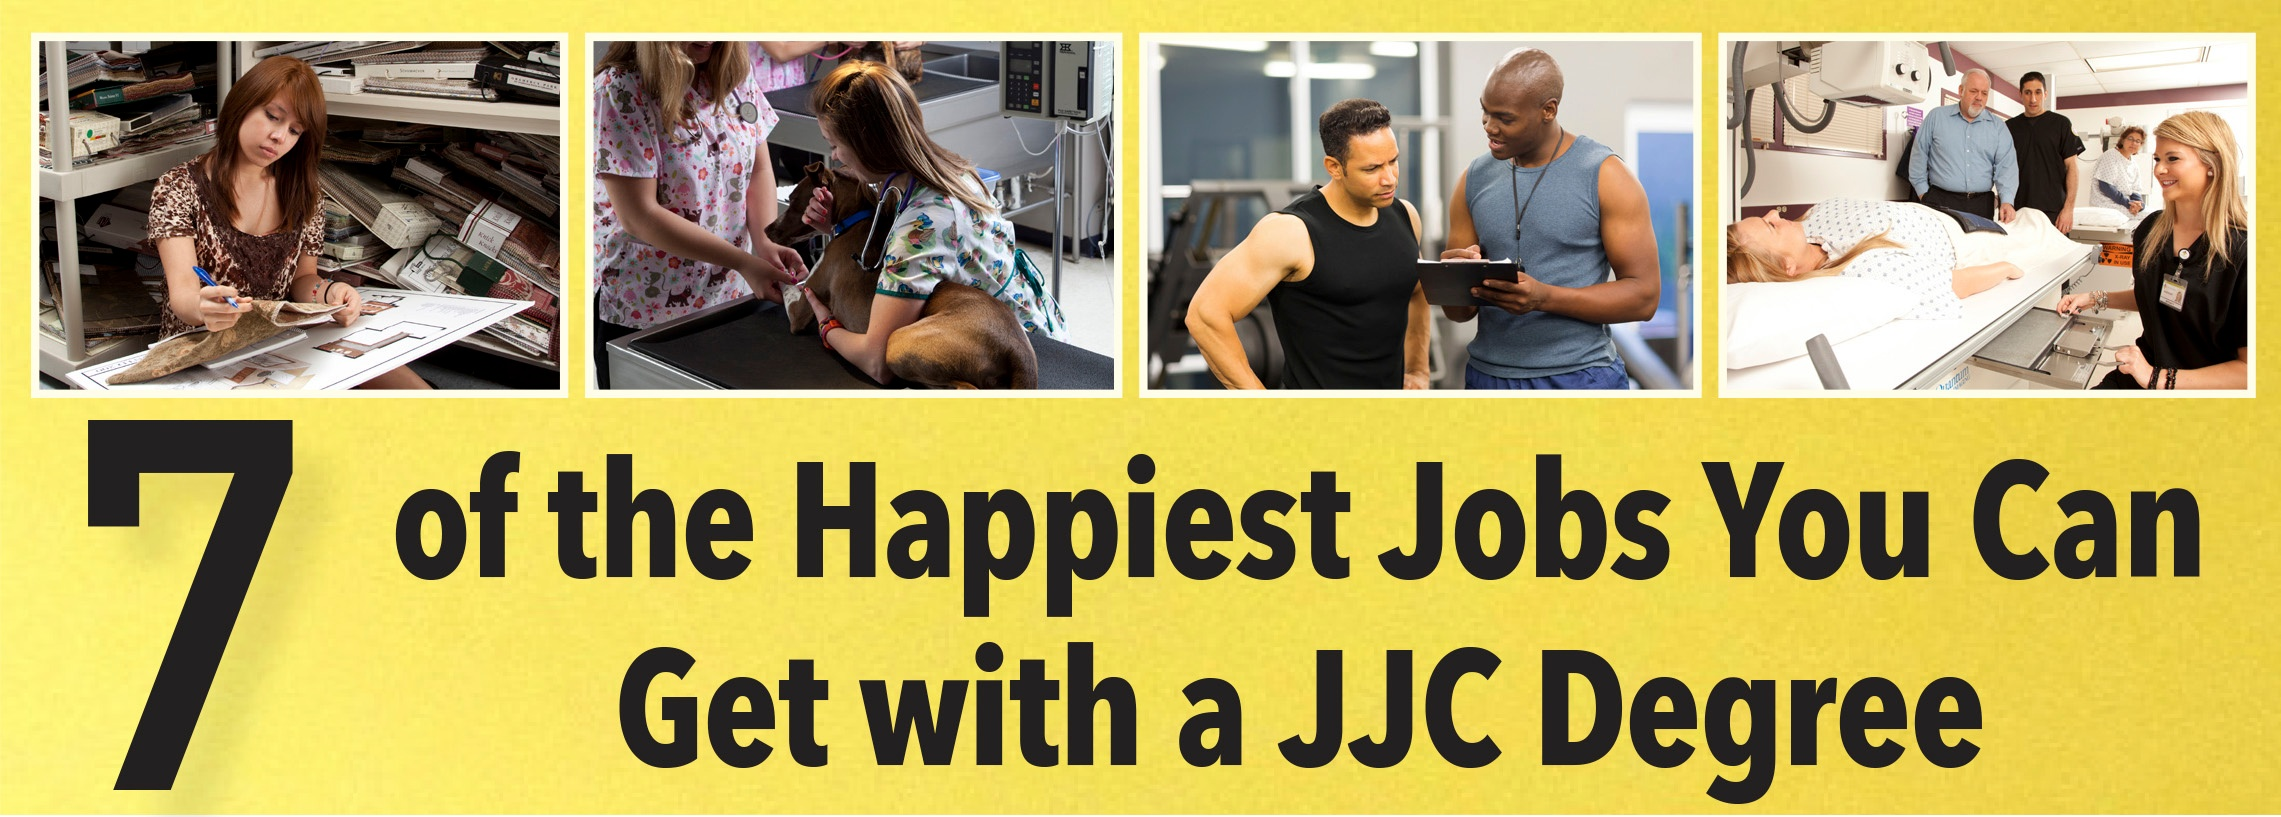 7 of the happiest jobs you can get with a jjc degree joliet junior college